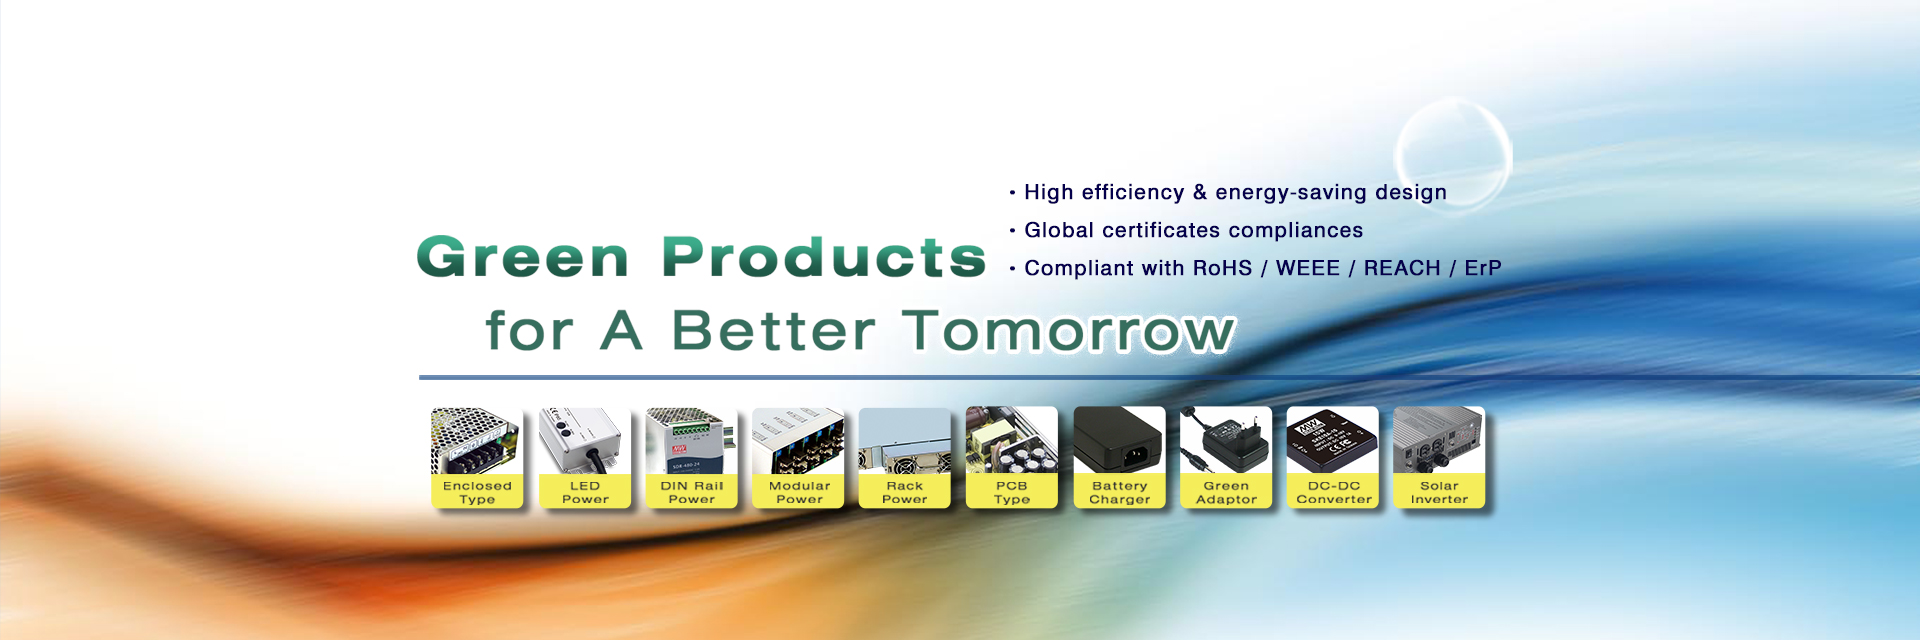 Green Products for A Better Tomorrow